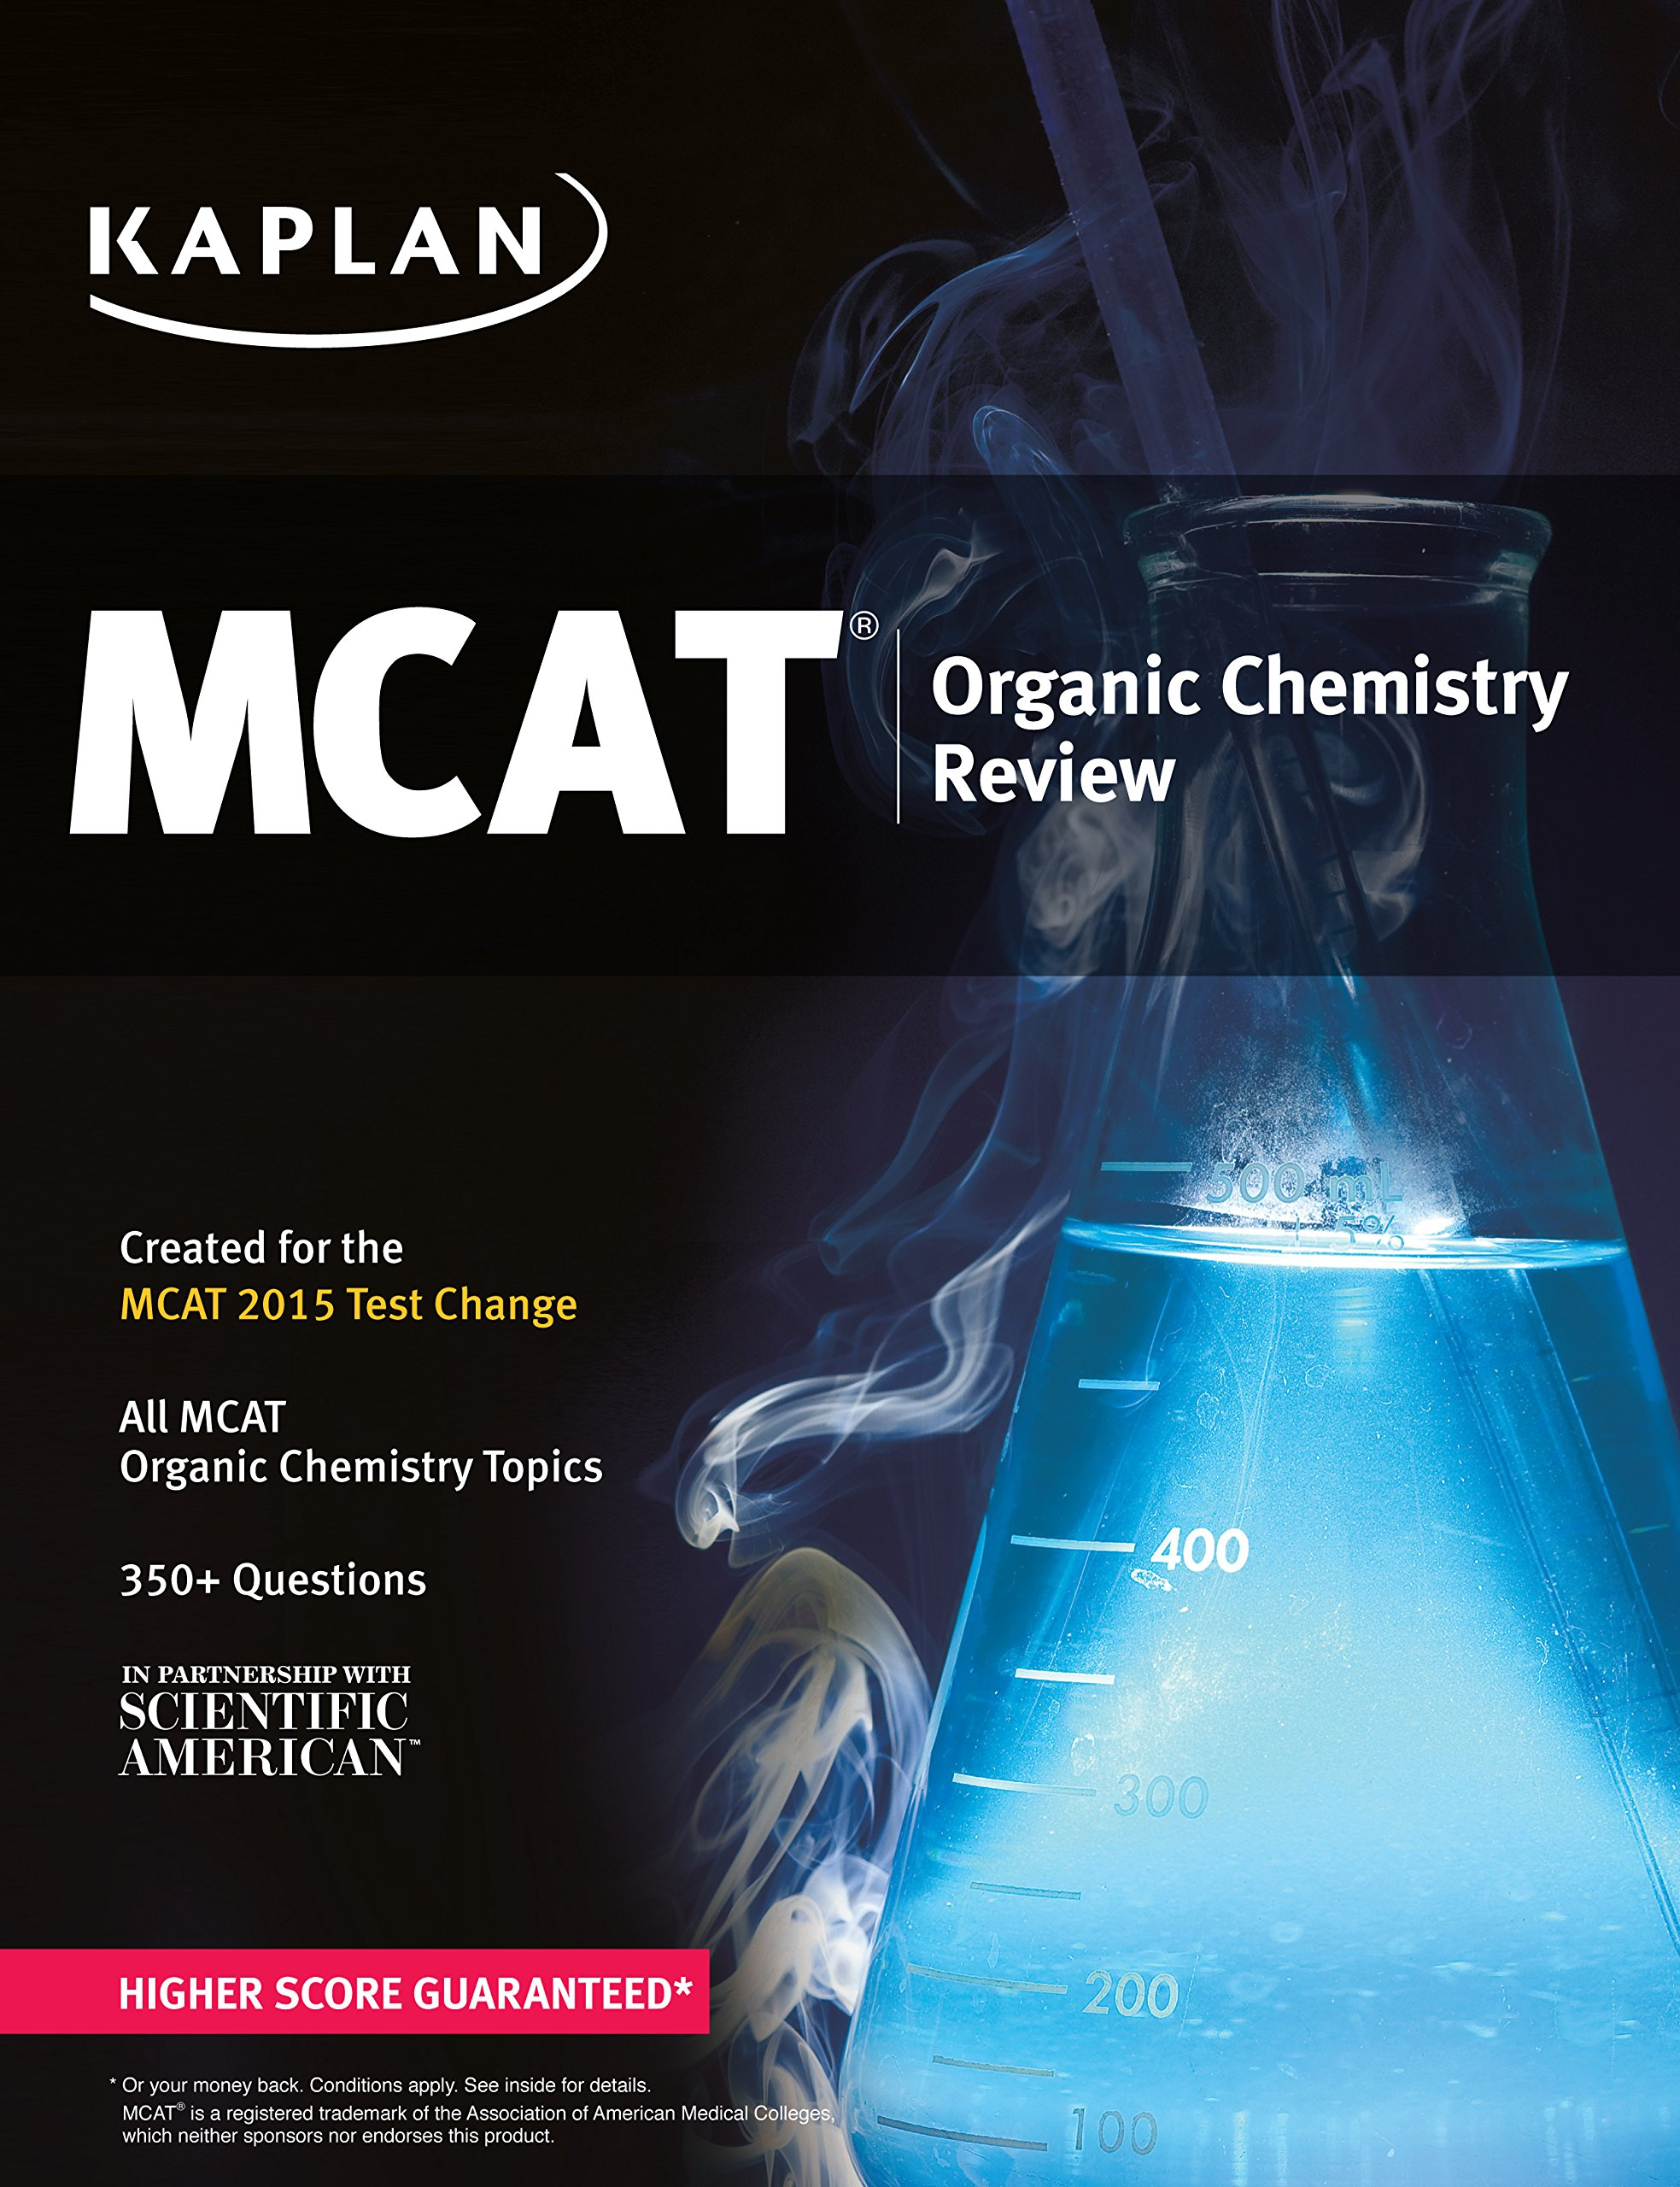 kaplan mcat organic chemistry review created for mcat 2015 kaplan mcat organic chemistry review created for mcat 2015 kaplan 9781618656506 books ca